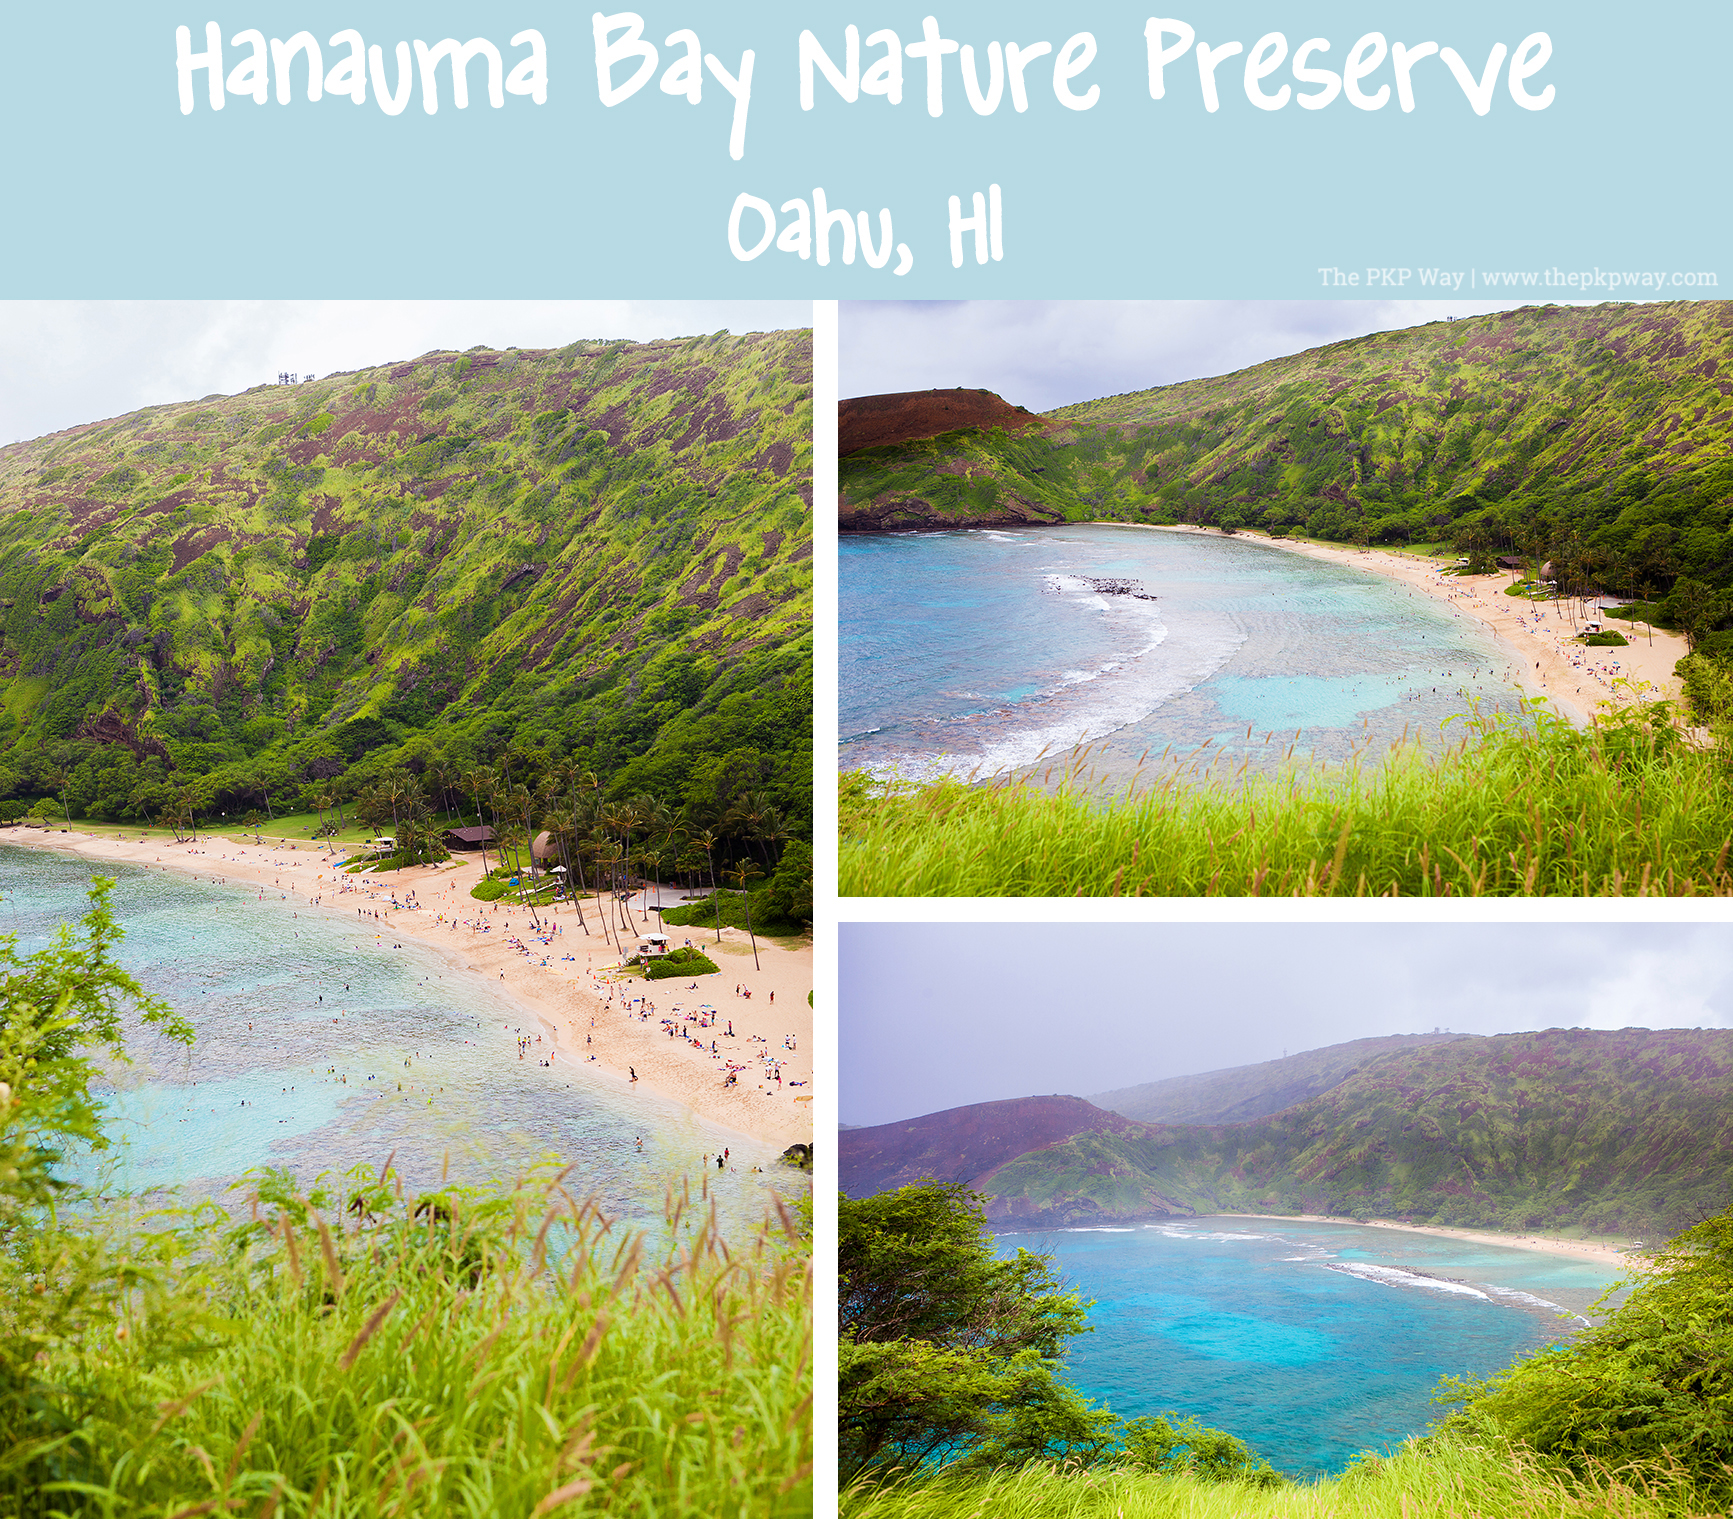 Oahu, Hawaii, Hanauma Bay Nature Preserve